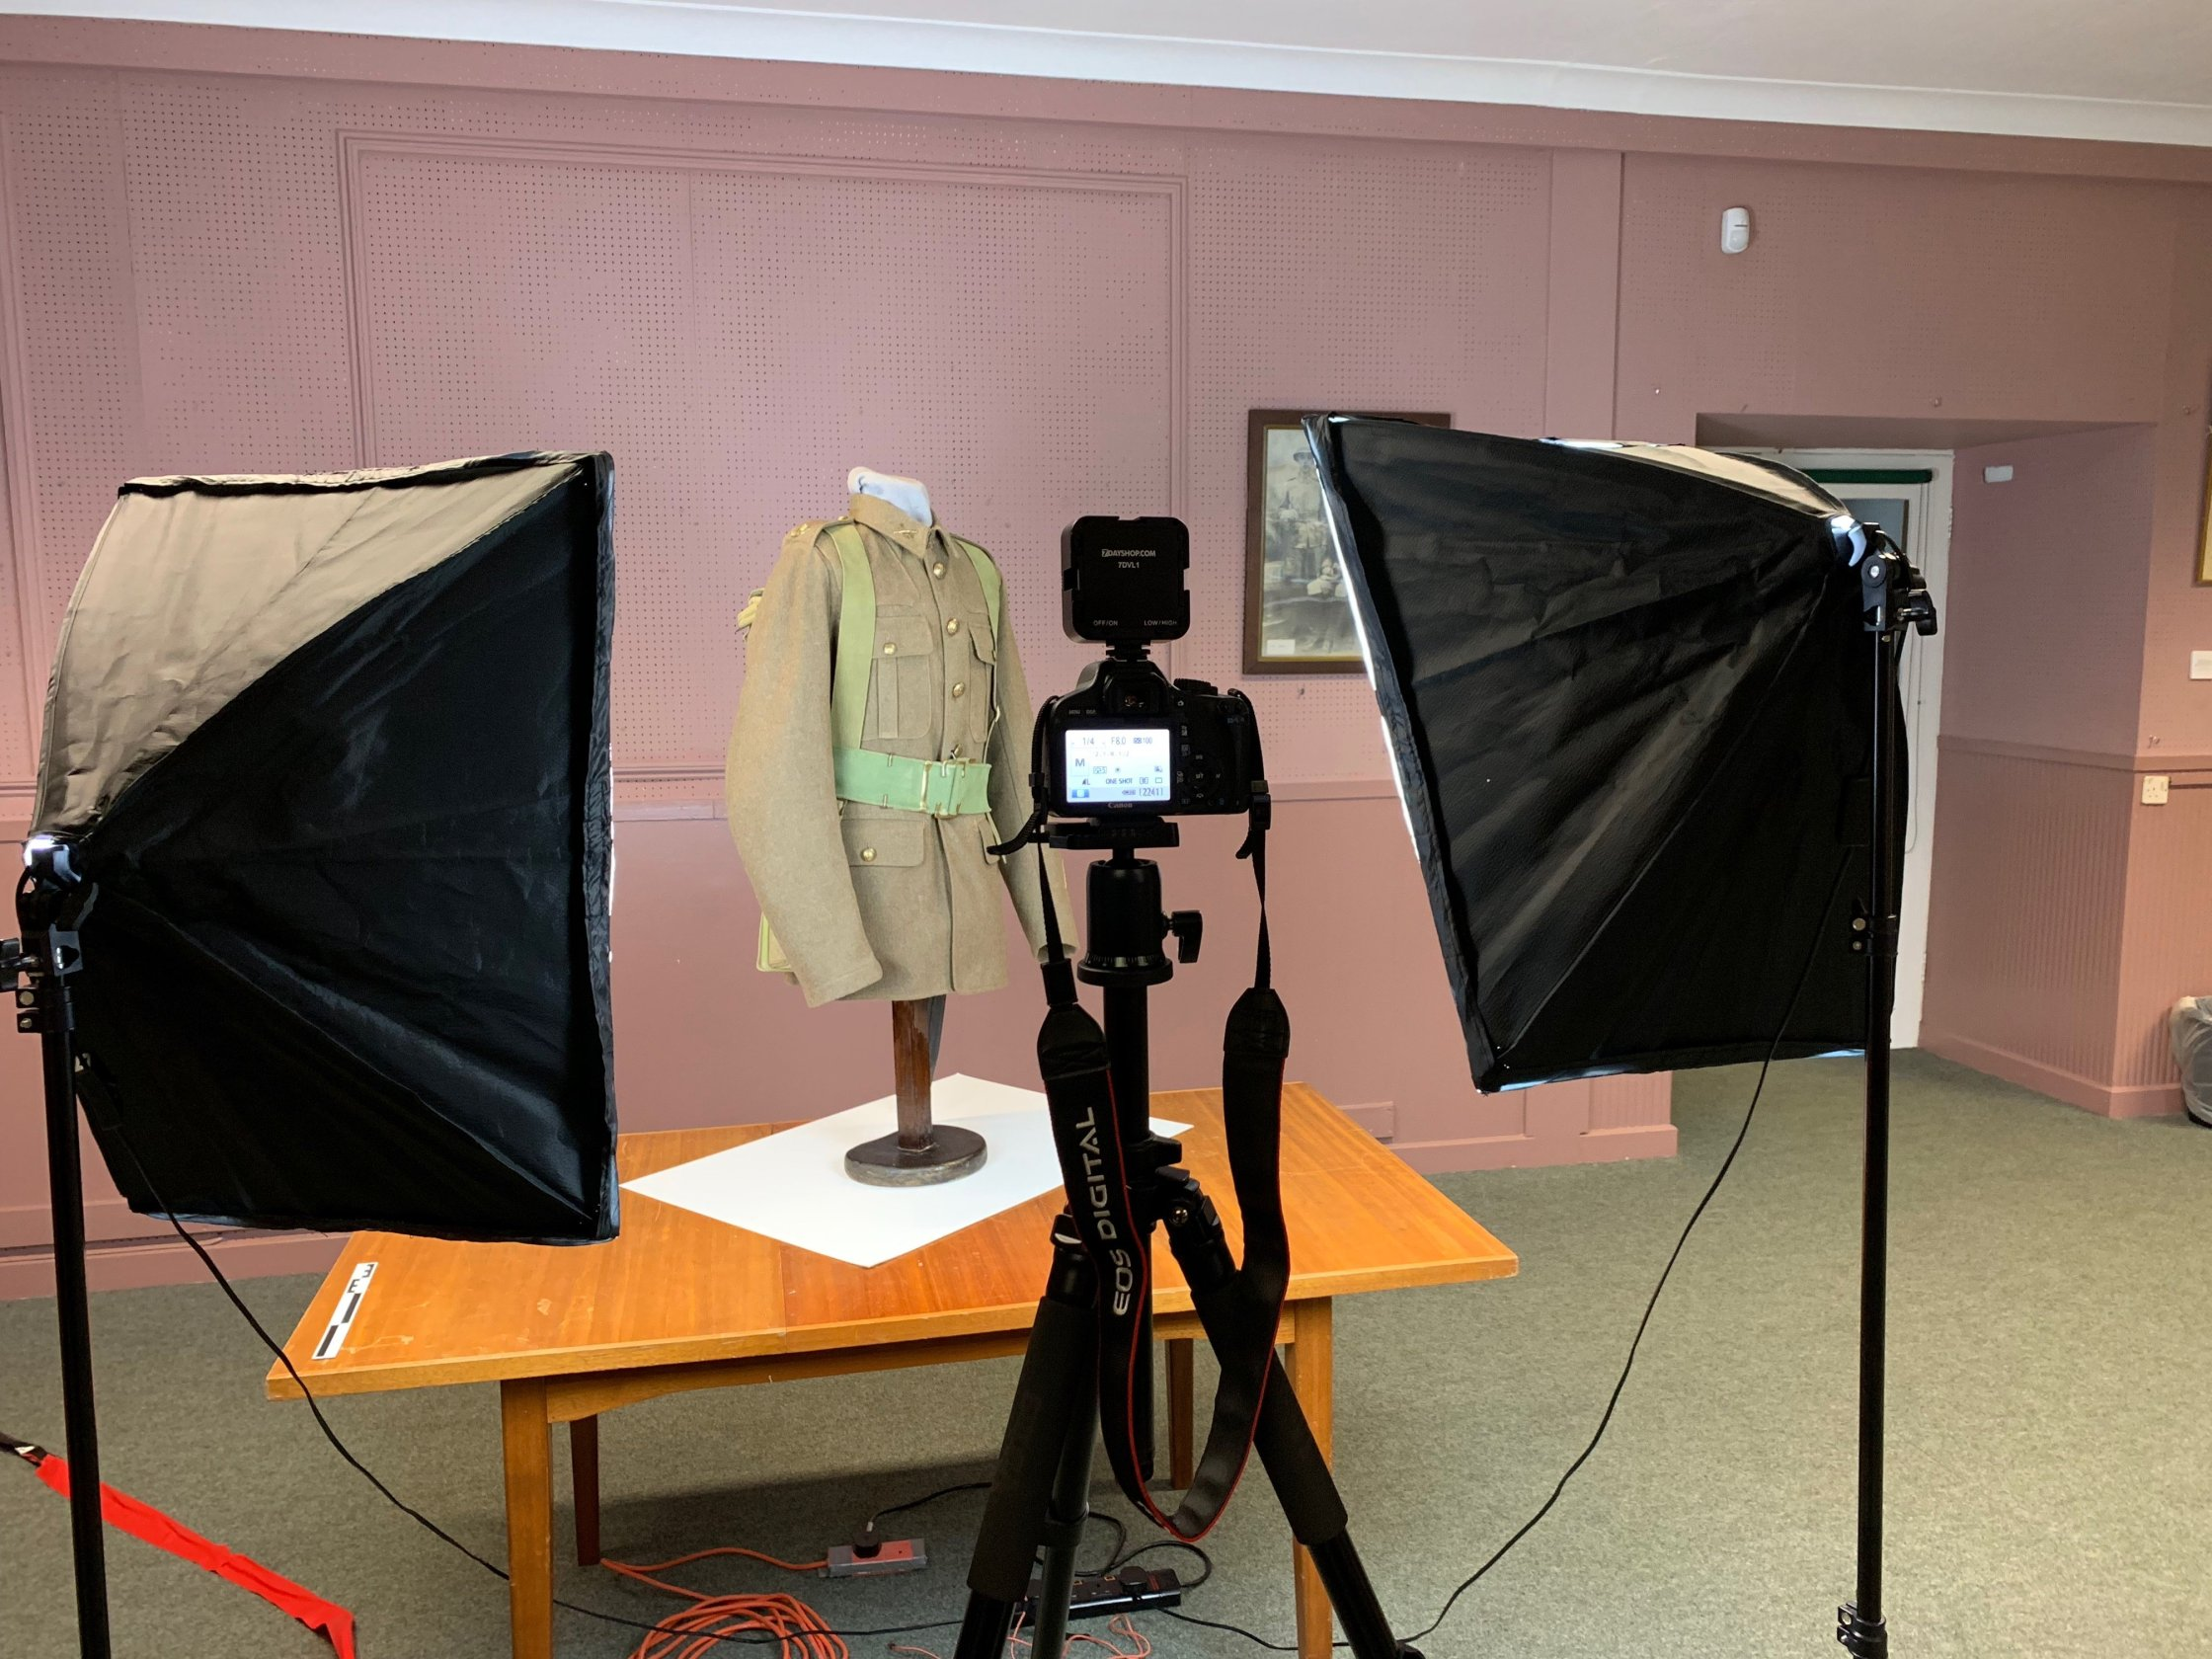 3D scanning a WWI uniform at Cornwall's Regimental Museum. A camera on a tripod points towards a mannequin dressed in the uniform, flanked by two studio lights